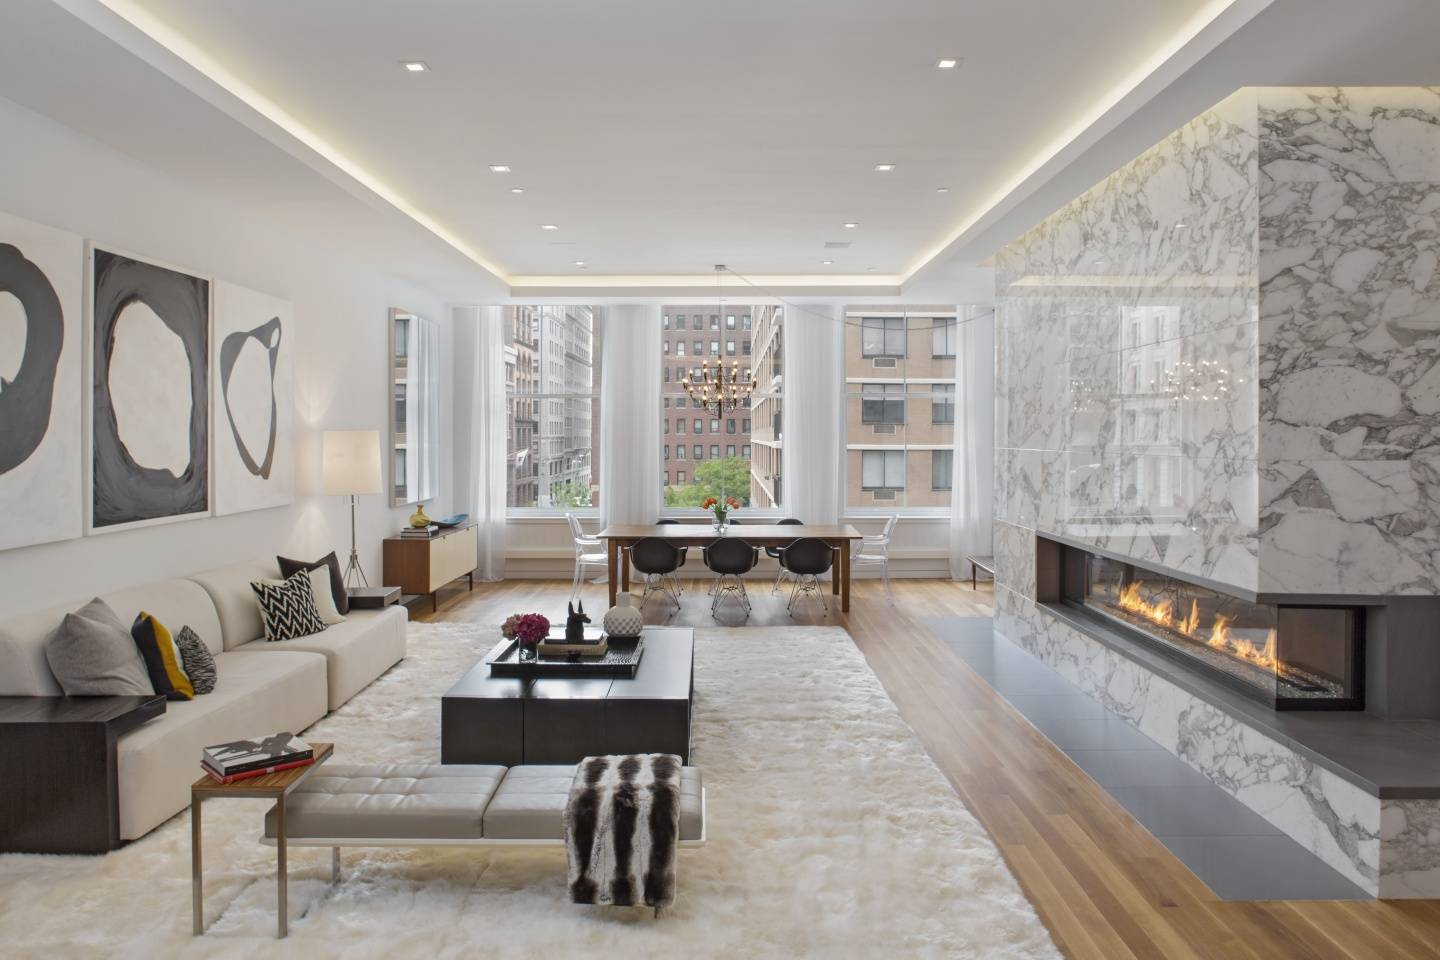 738Broadway2_Raphael_DeNiroDouglasElliman_Photography_16315029_high_res